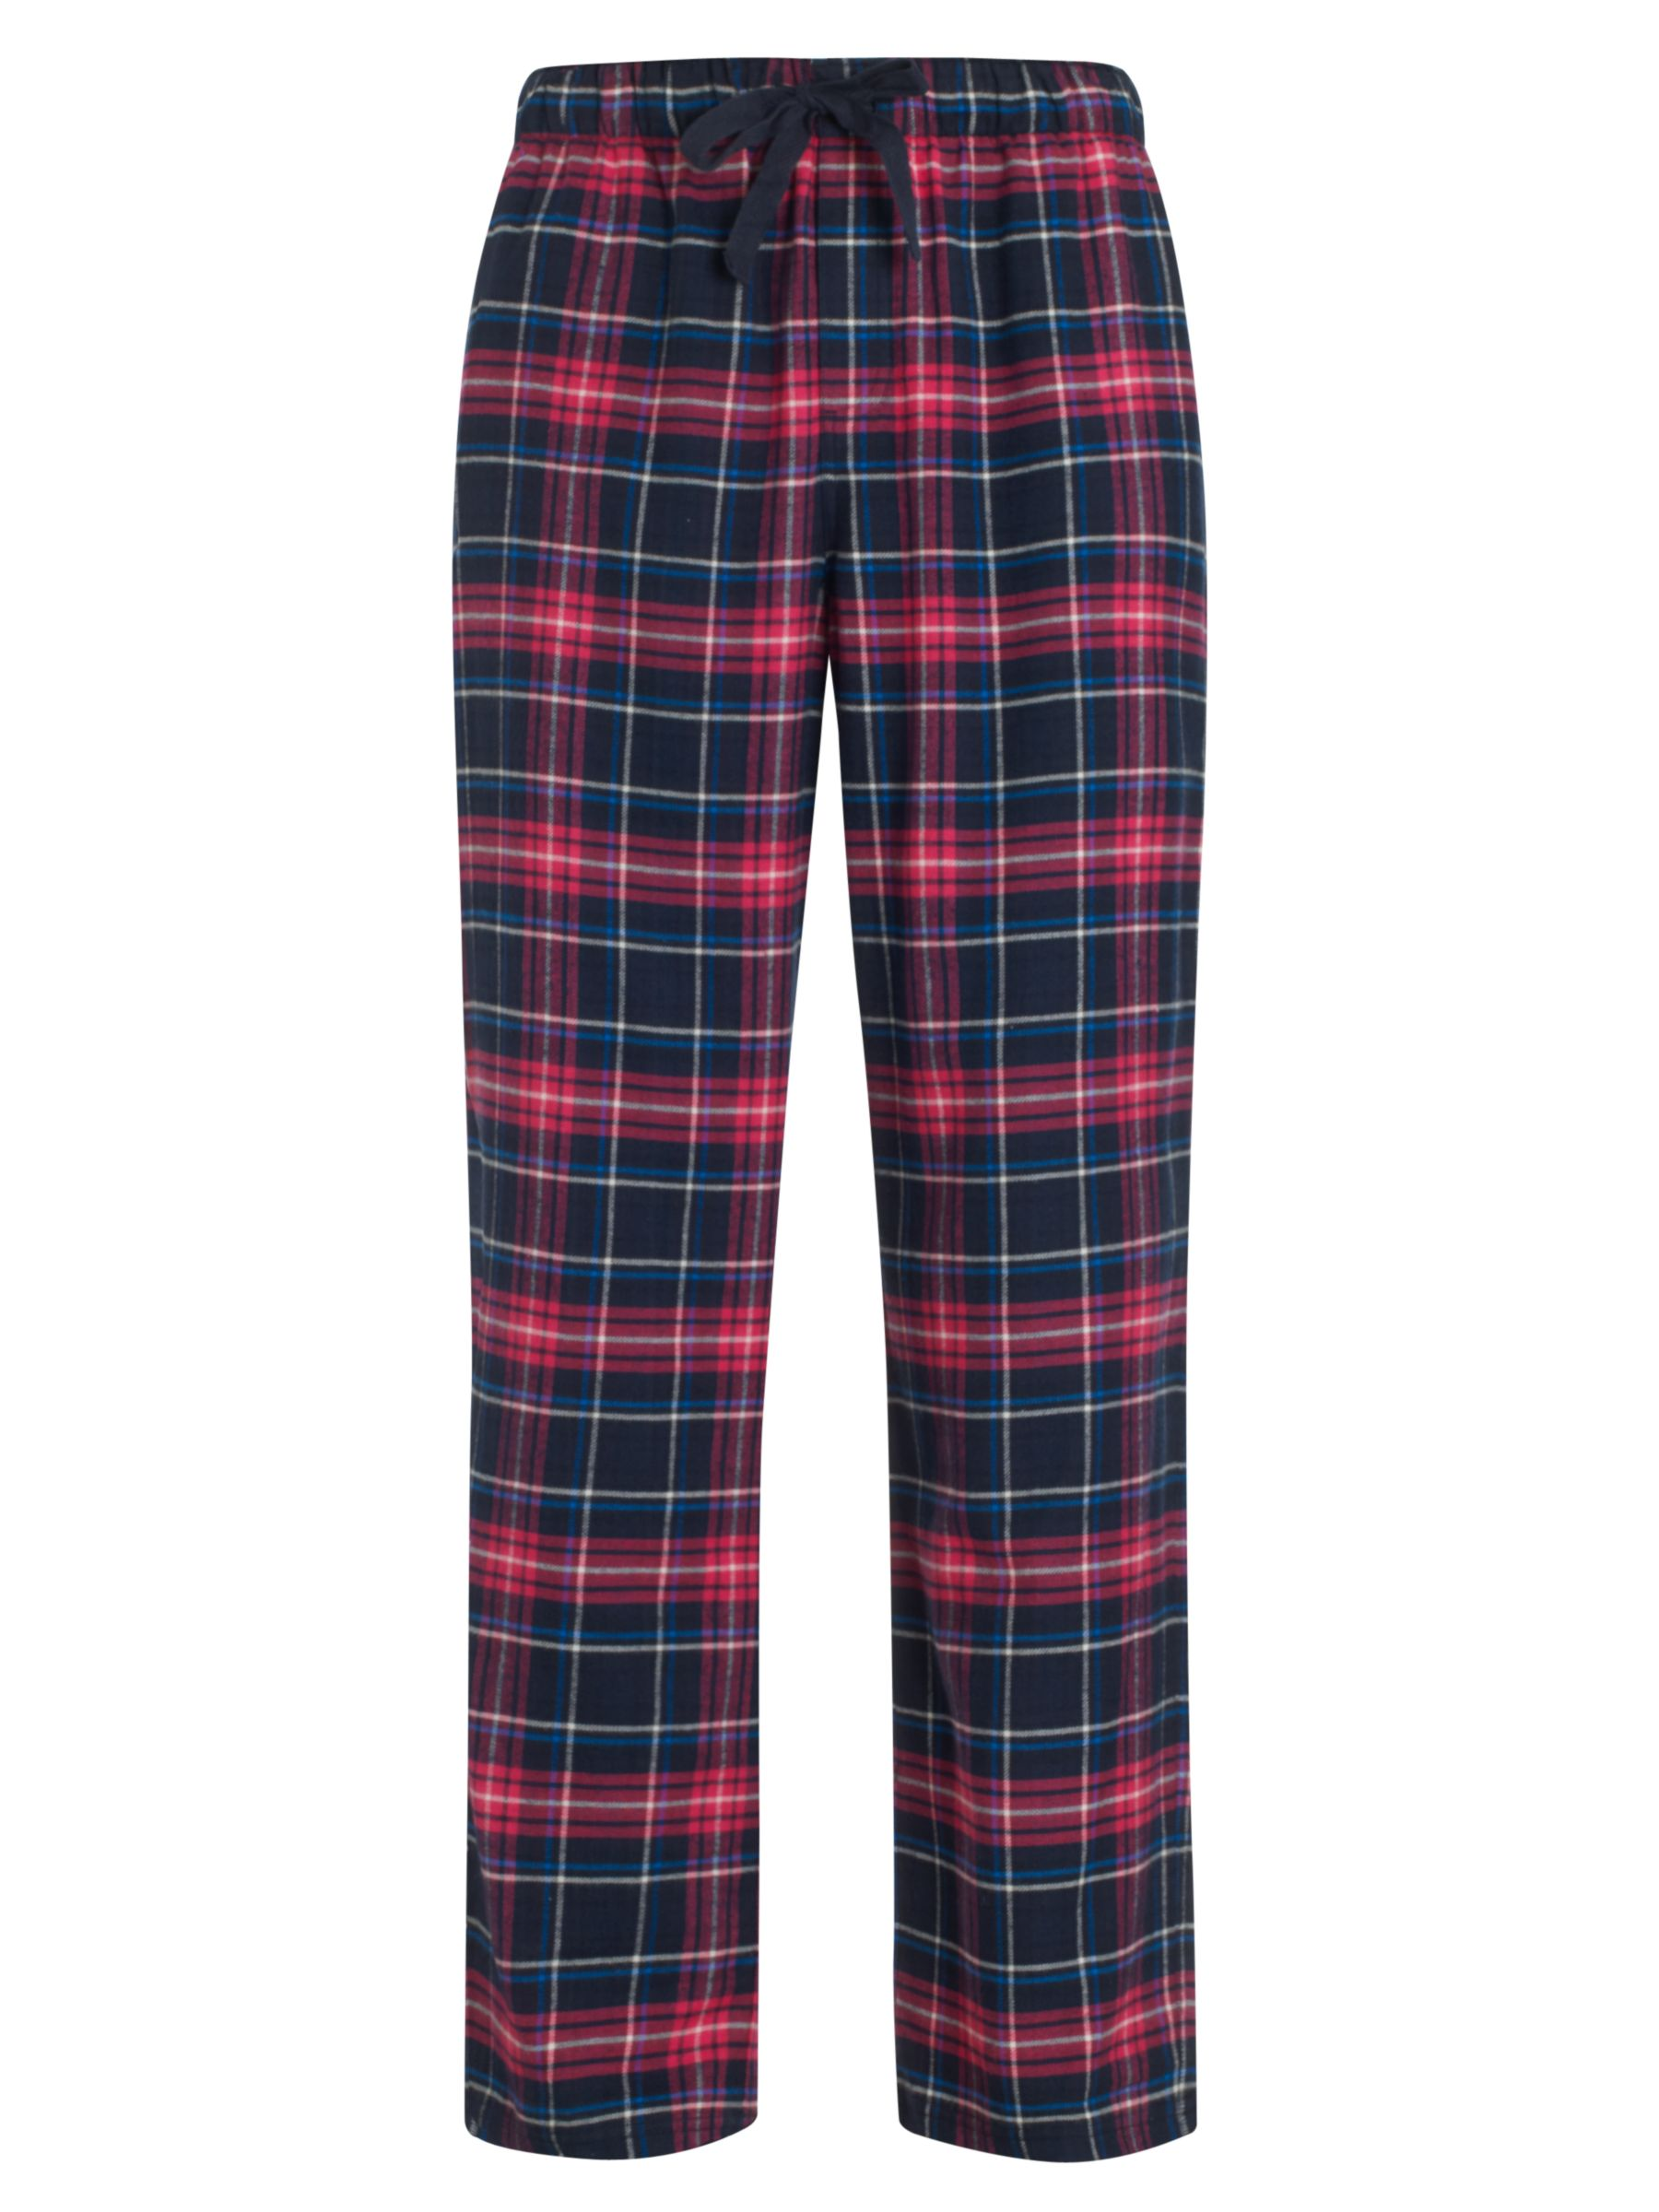 John Lewis Brushed Cotton Cotton Check Pyjama Bottoms, Pink/Blue